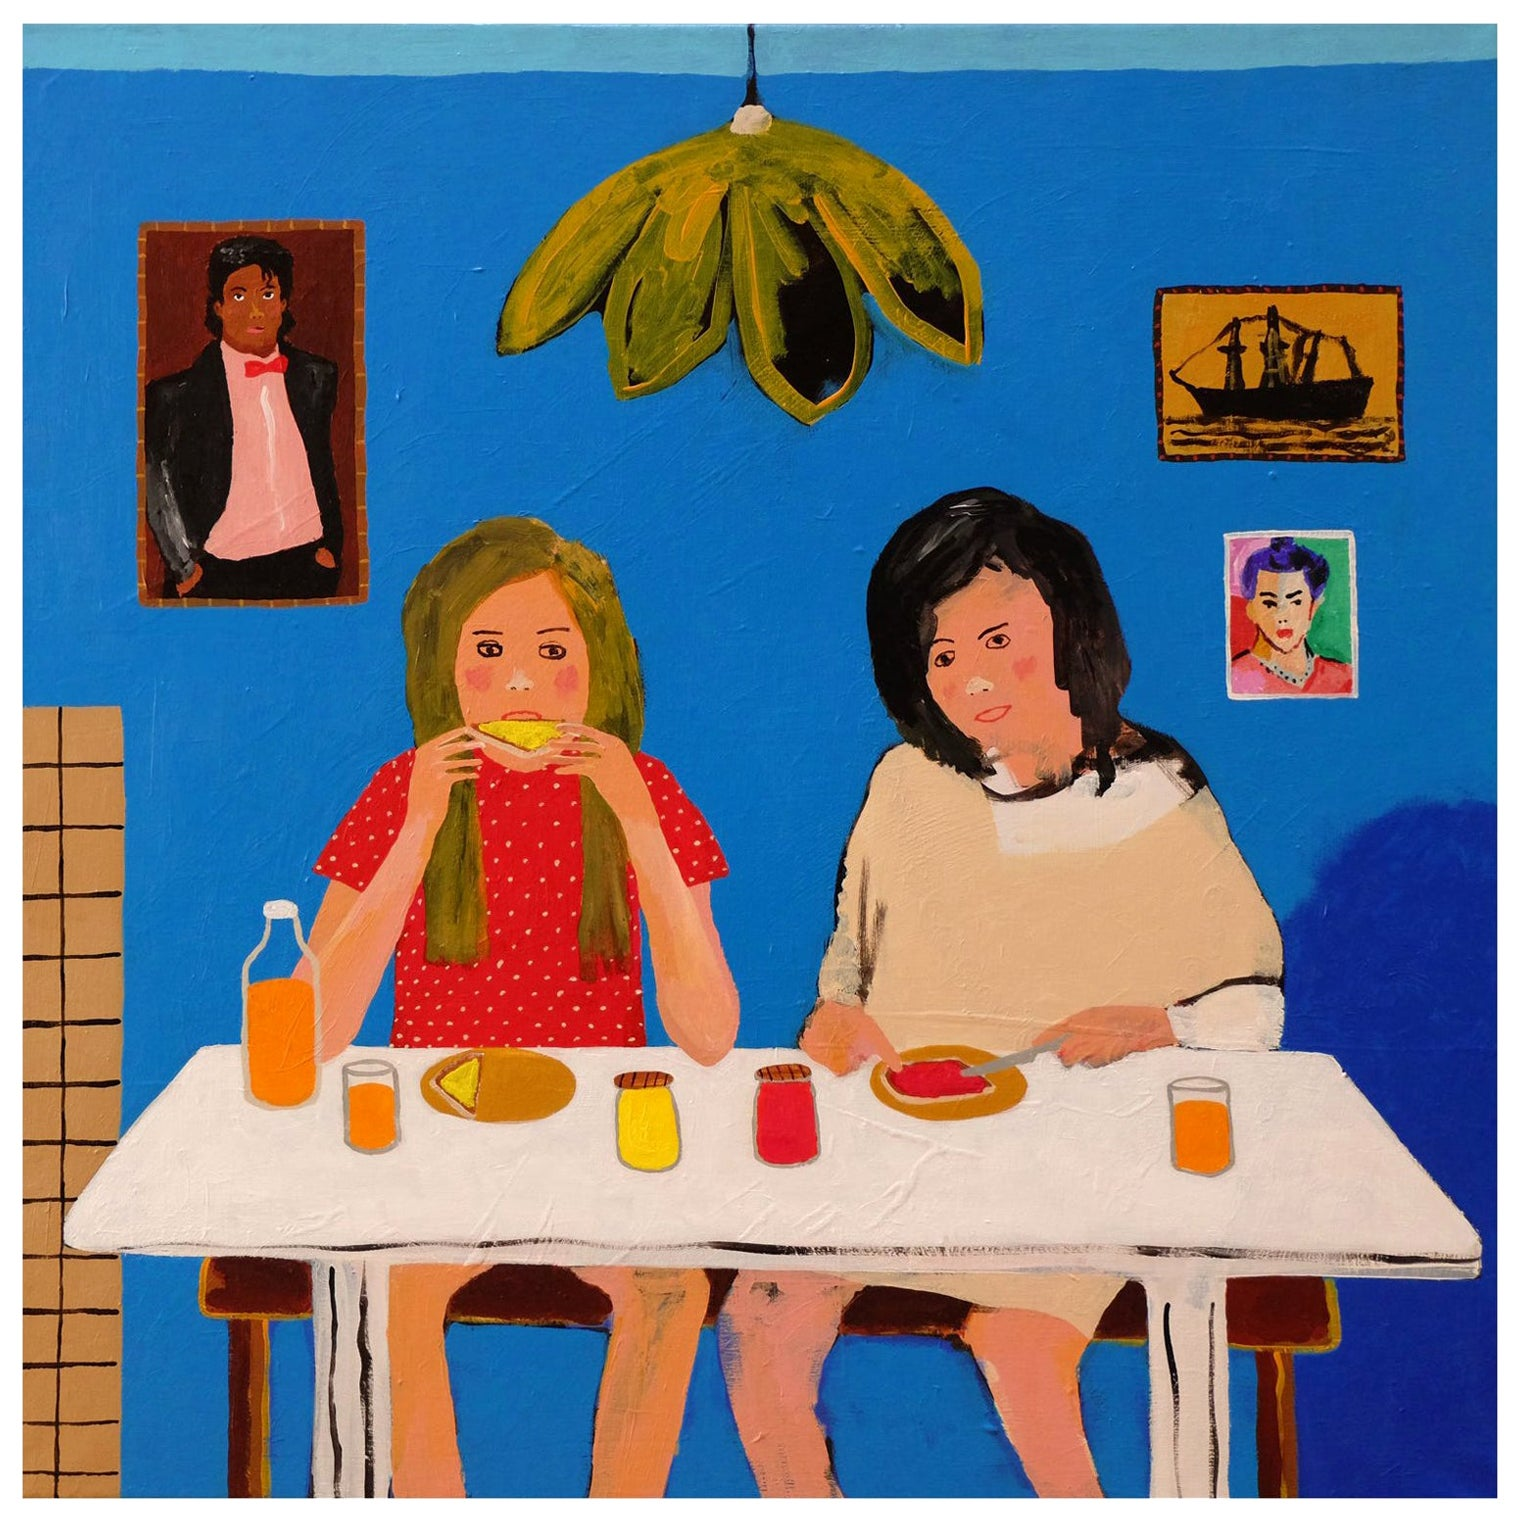 'Early Birds' Portrait Painting by Alan Fears 1980s Girls Pop Art